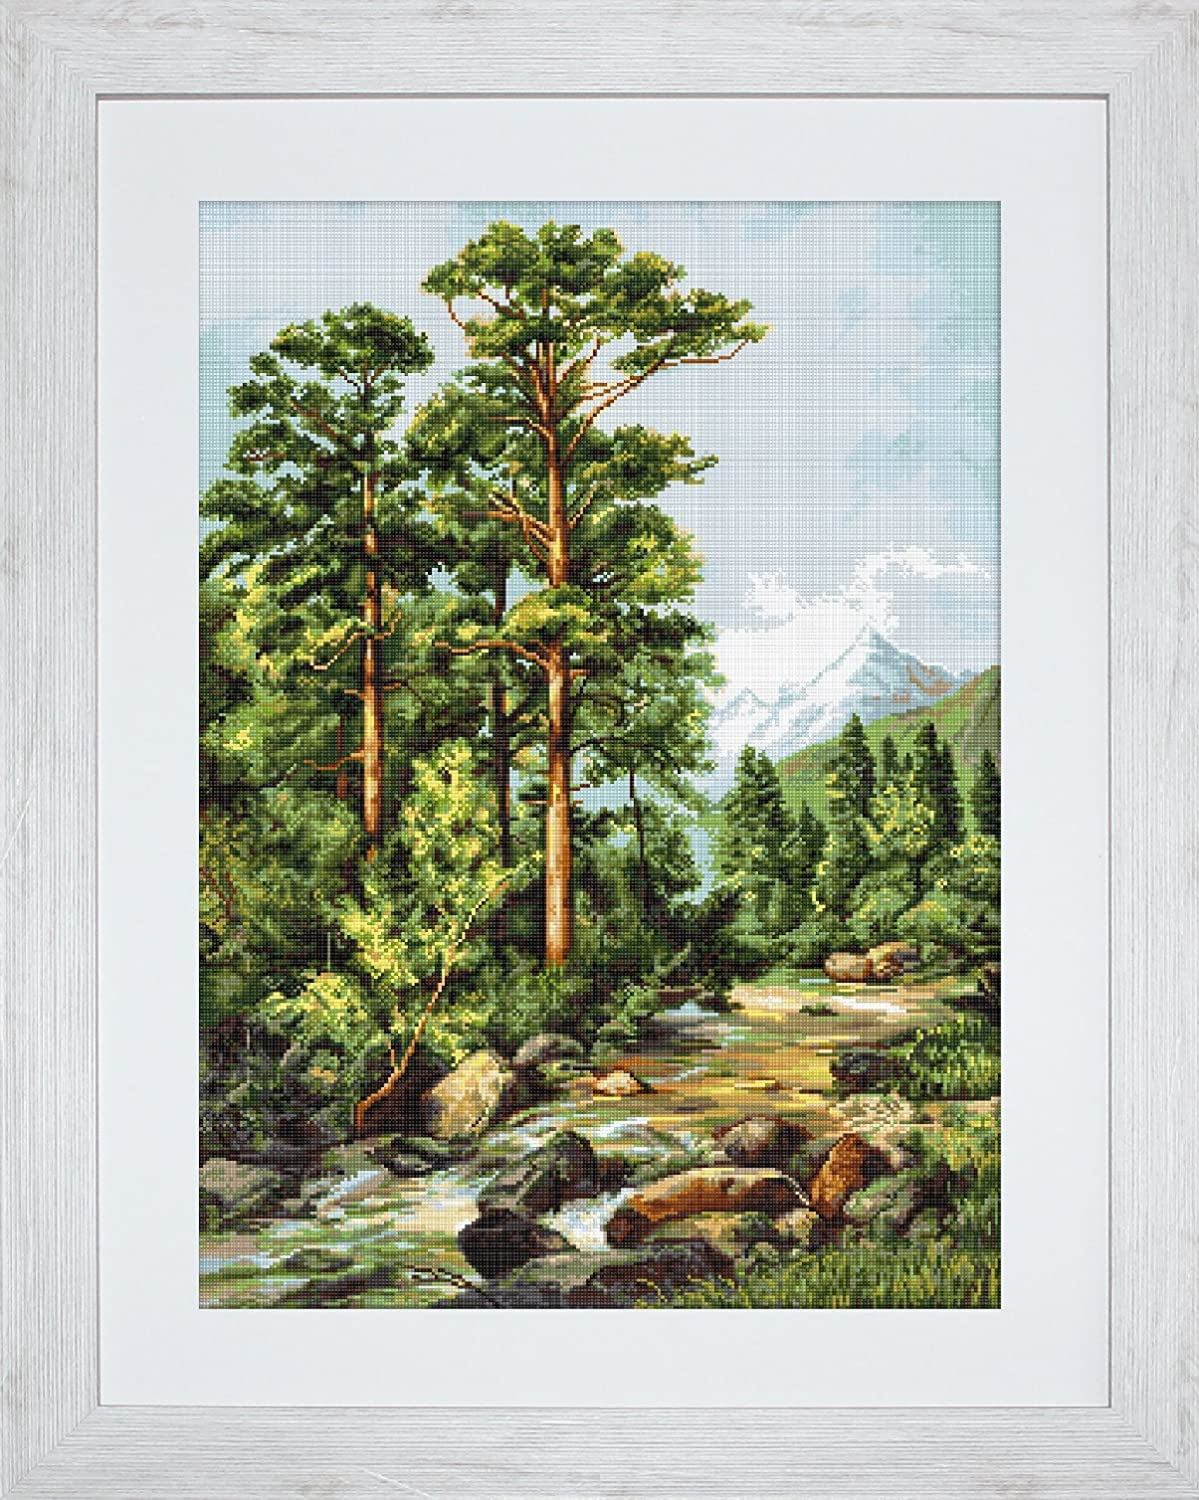 Lucas-S Mountain River Counted Cross-Stitch Kit Luca-S B522